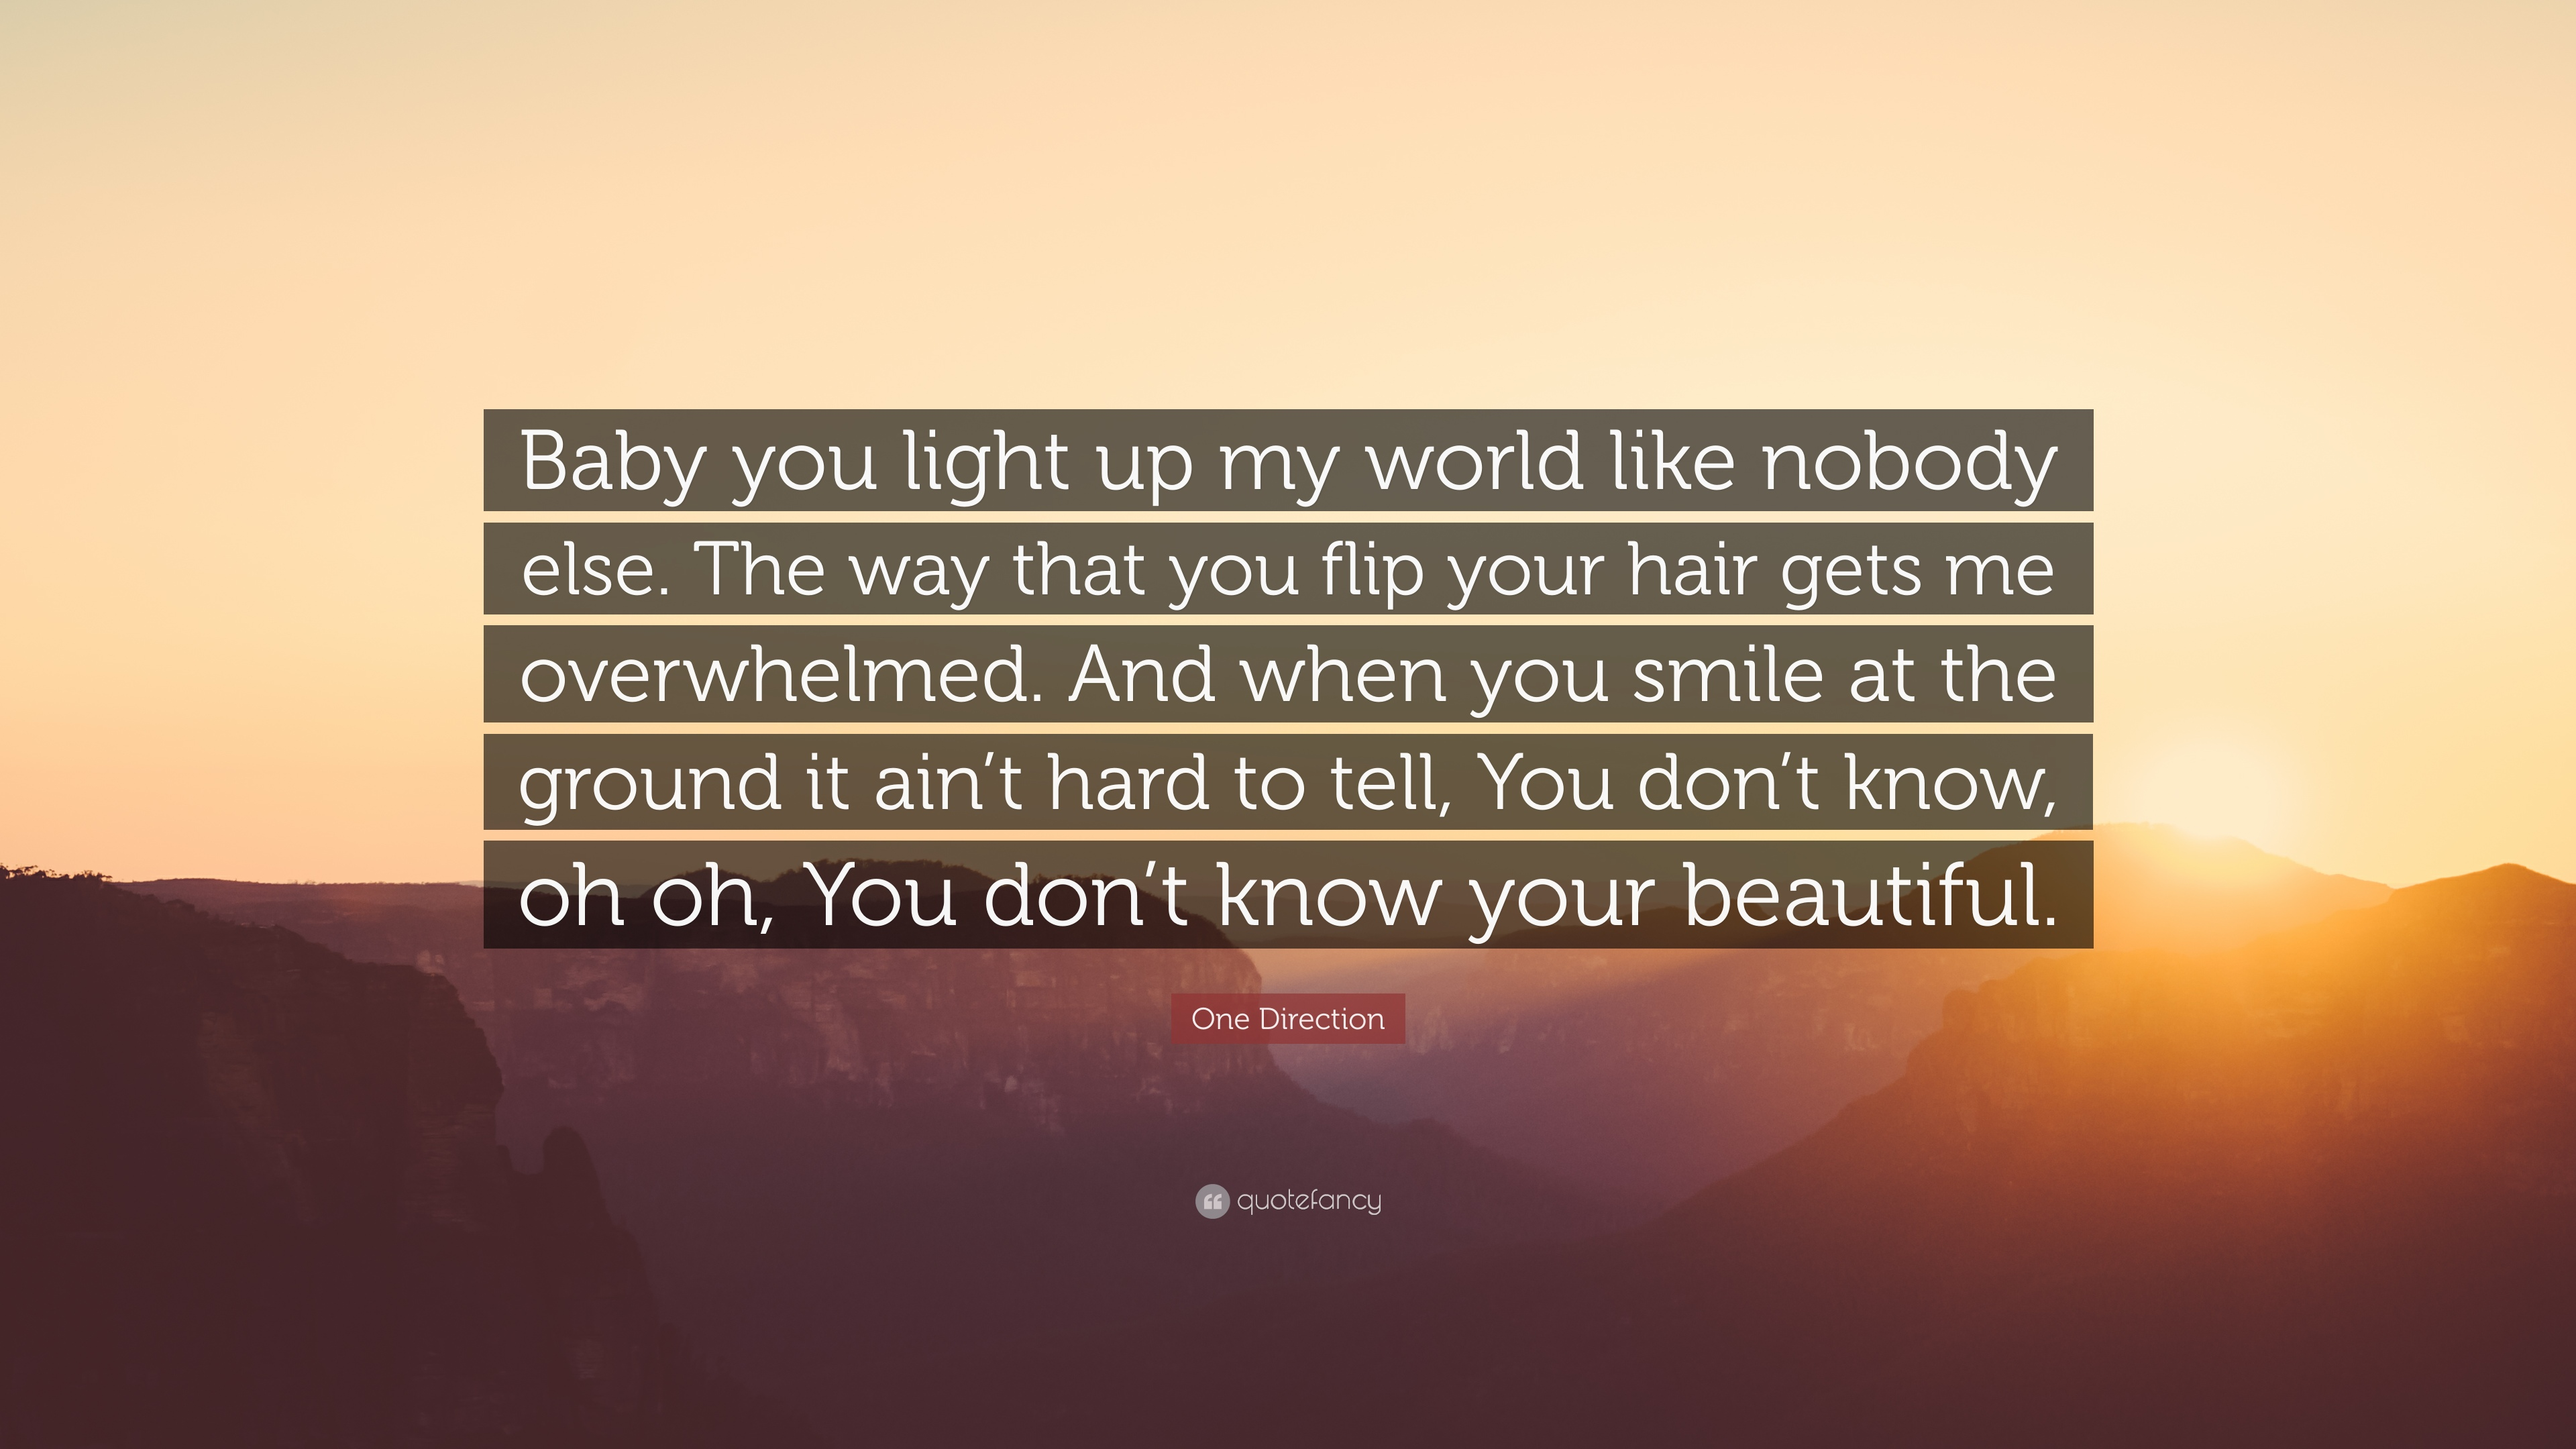 Image of: Louis Tomlinson One Direction Quote baby You Light Up My World Like Nobody Else The Quotefancy One Direction Quotes 7 Wallpapers Quotefancy